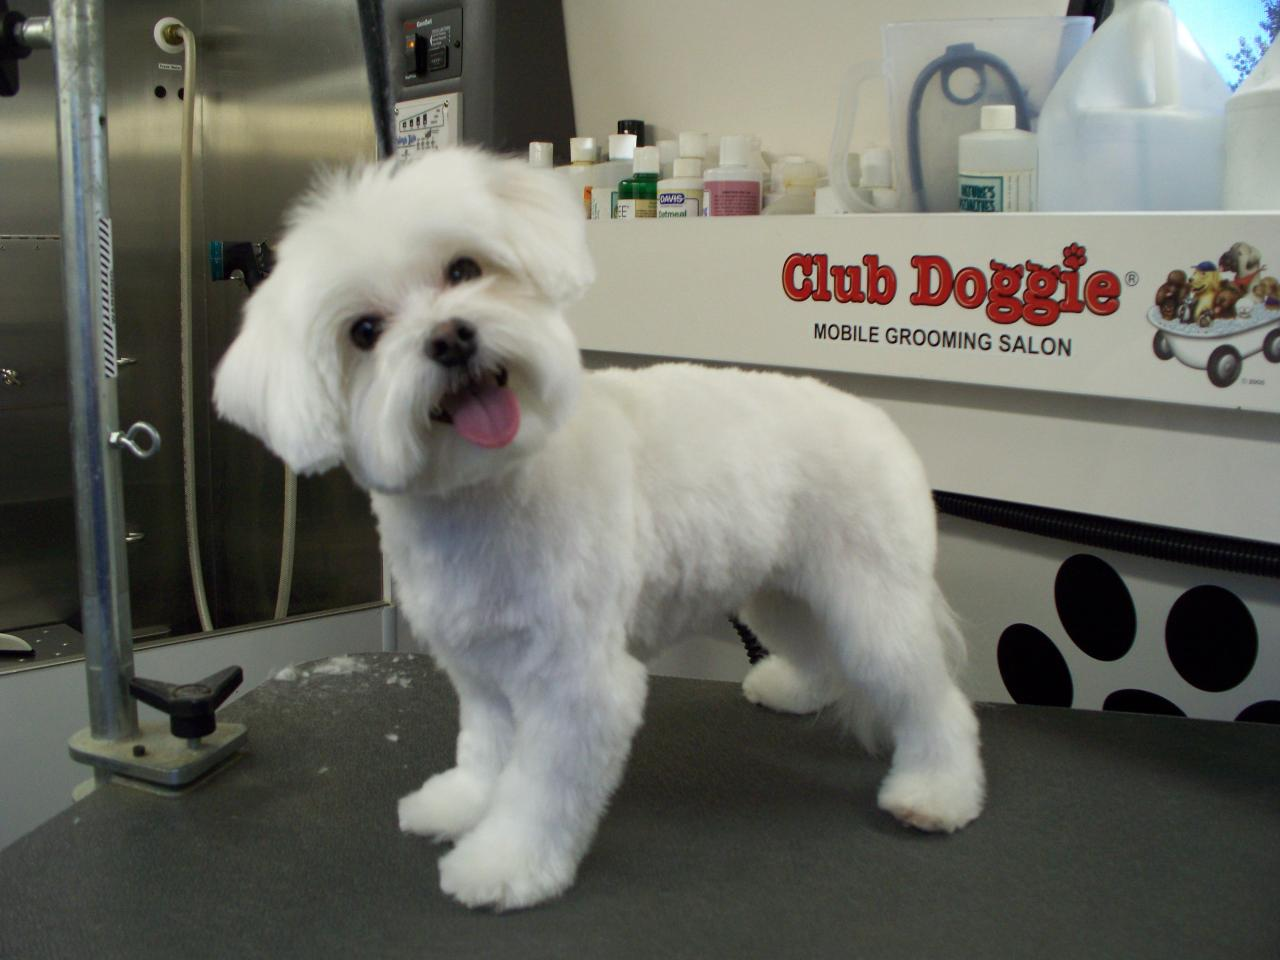 Club Doggie Mobile Grooming Salon - Before and After Photo Gallery